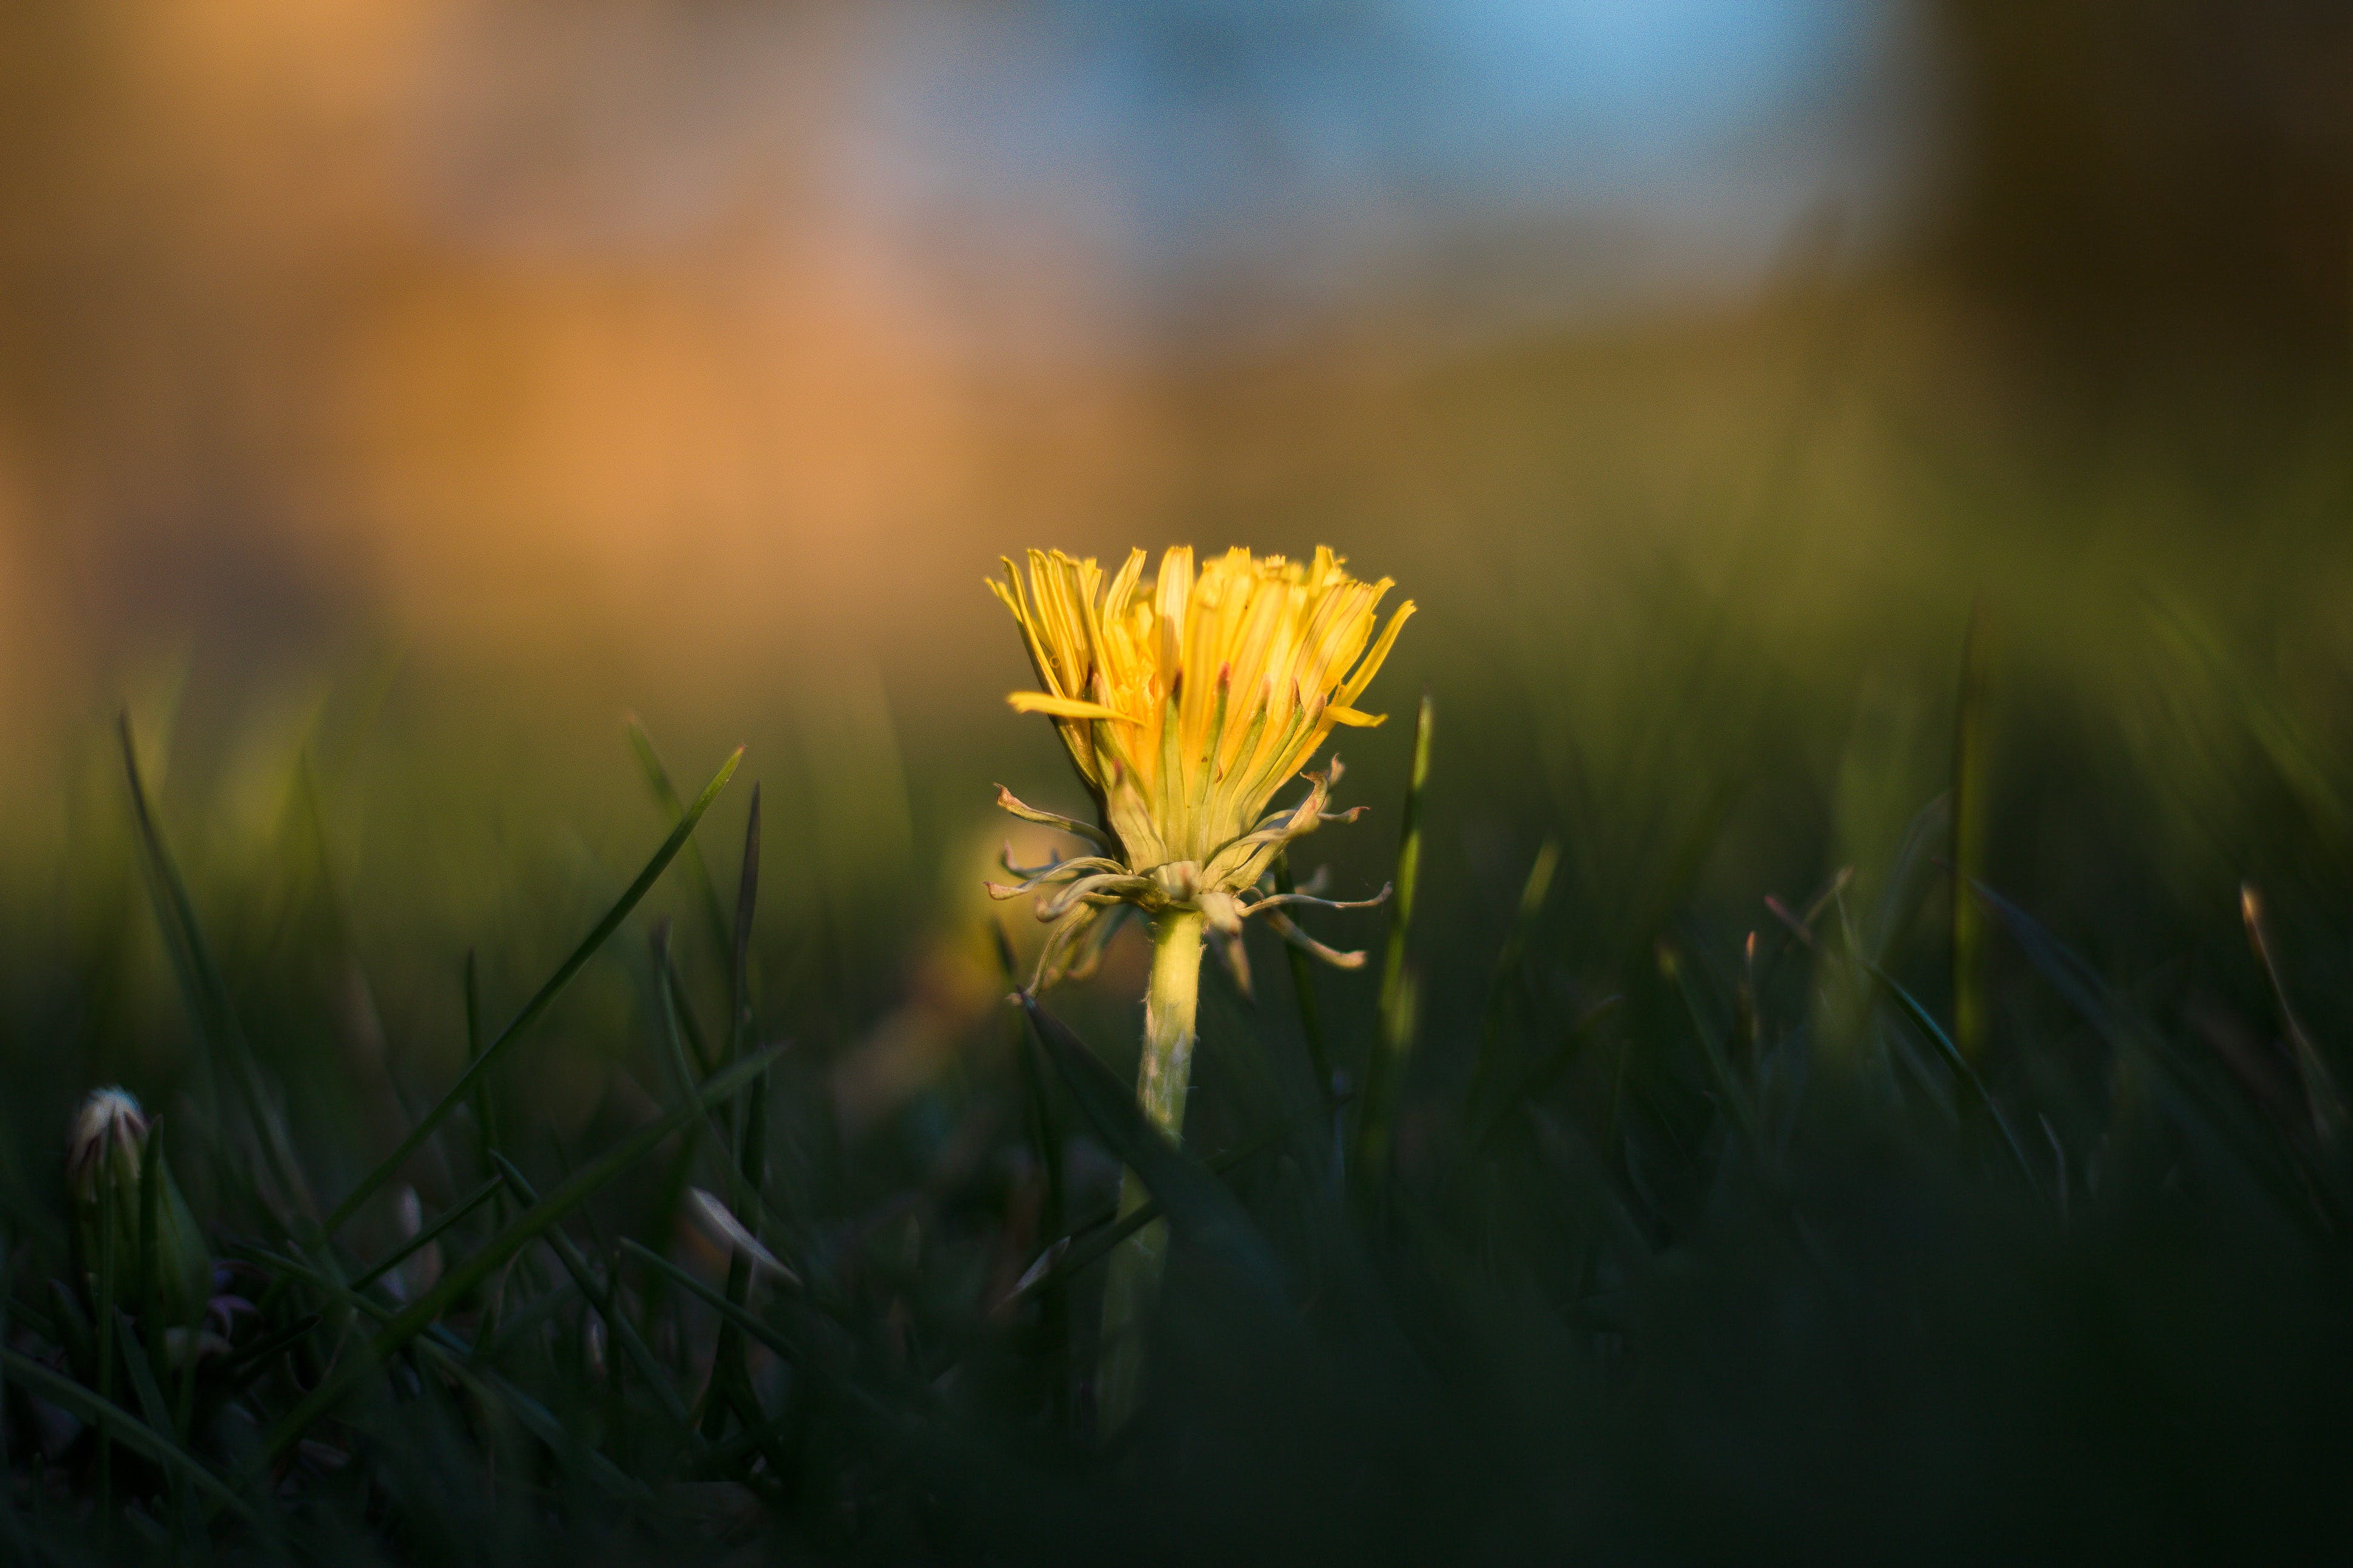 Free stock photo of nature, grass, flower, golden hour